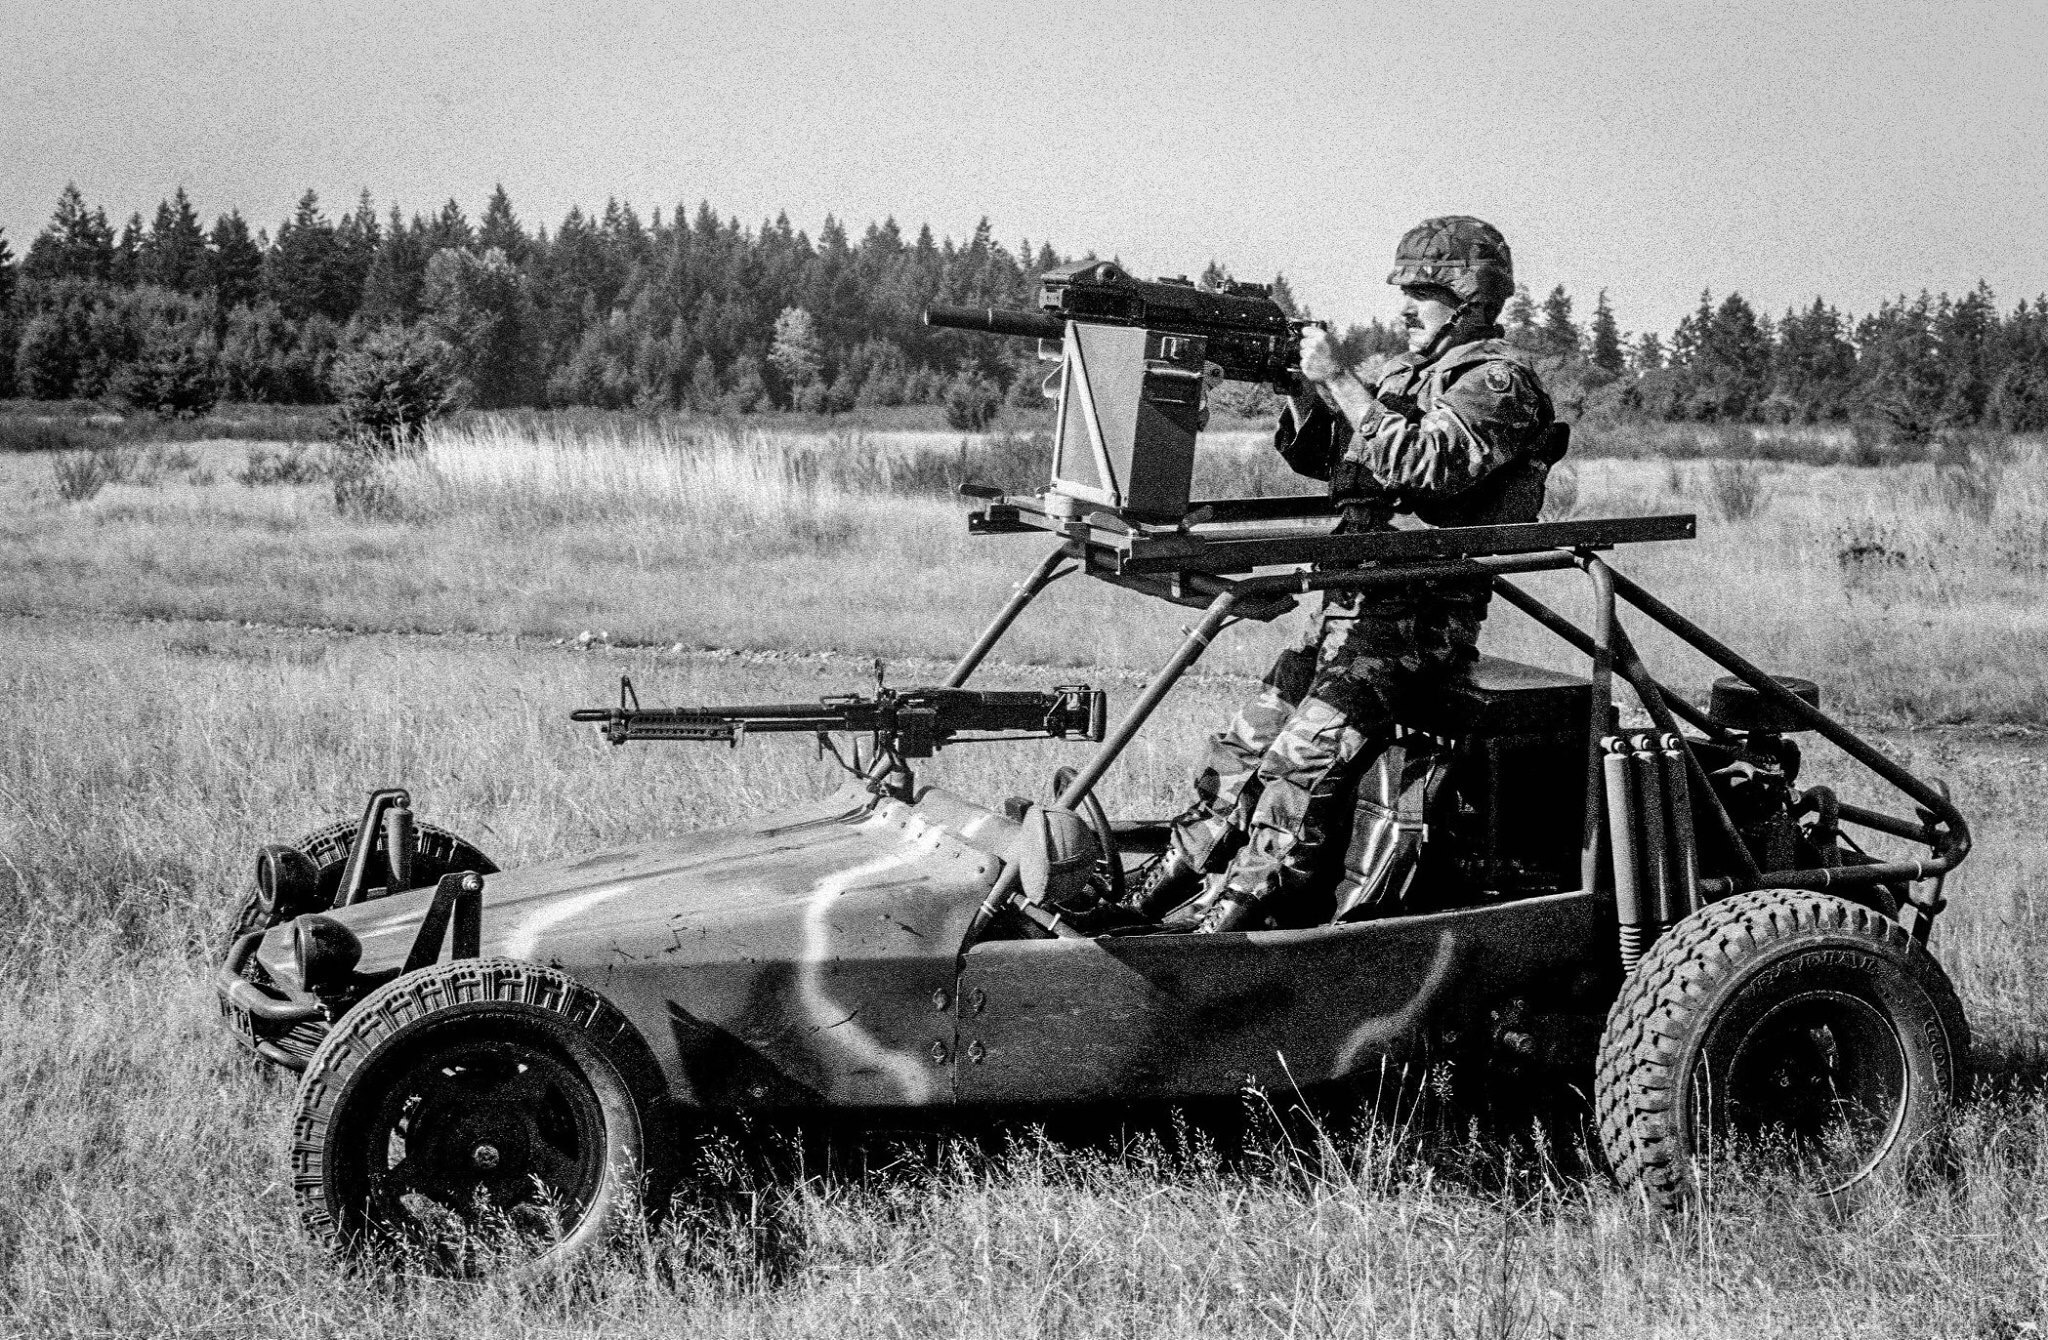 9th Infantry Division (Motorized) - Soldier Systems Daily